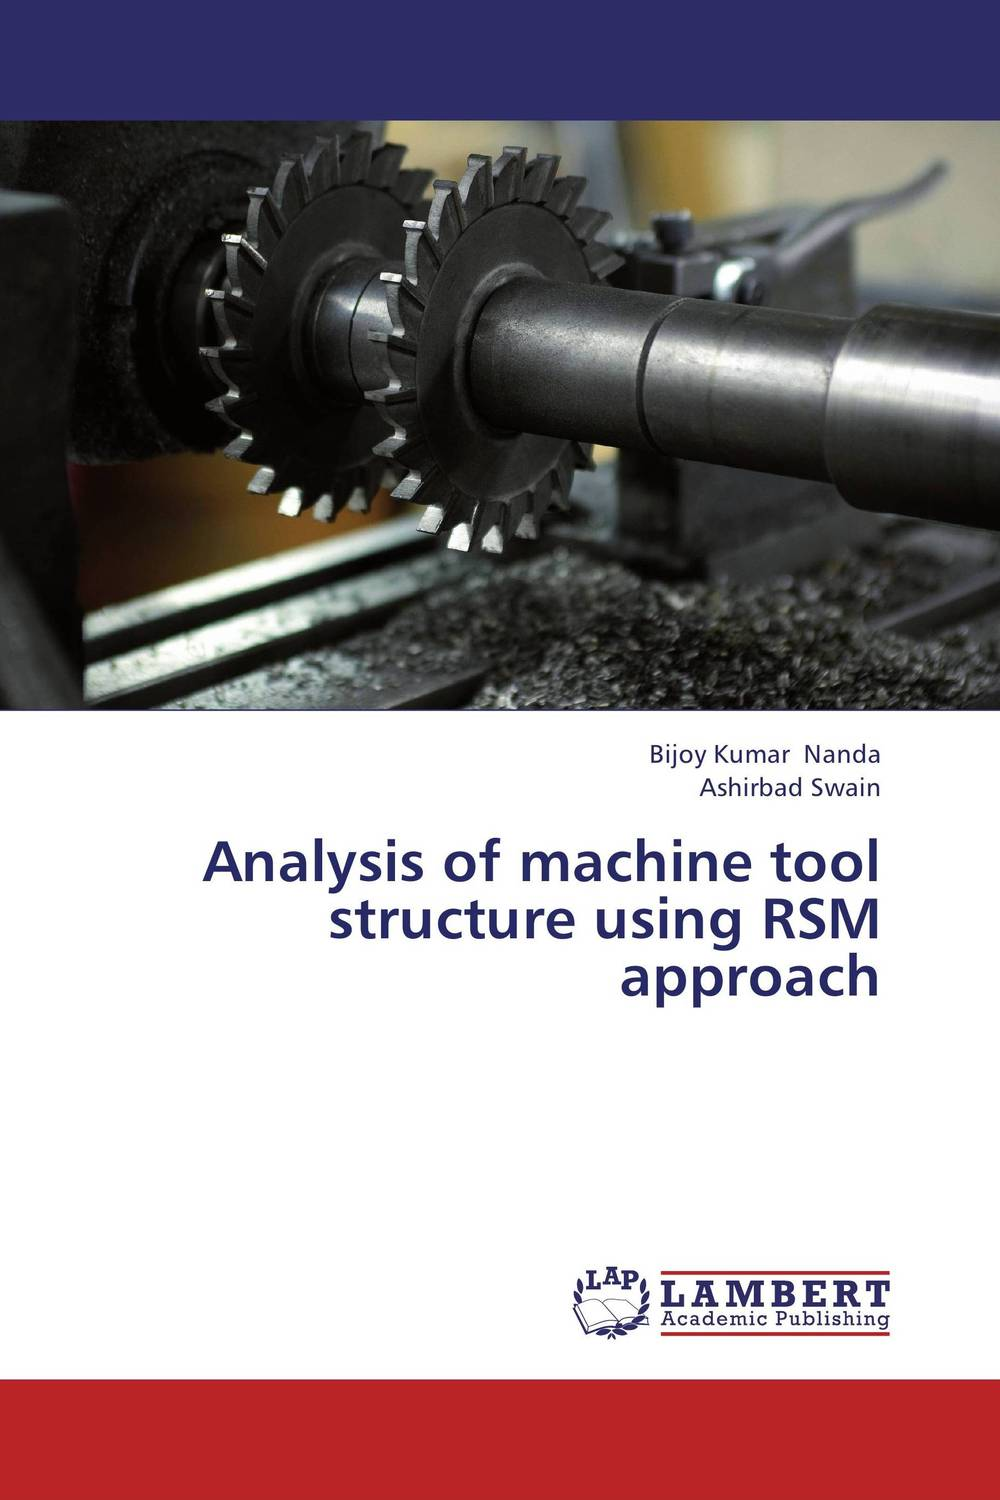 Analysis of machine tool structure using RSM approach bijoy kumar nanda and ashirbad swain analysis of machine tool structure using rsm approach